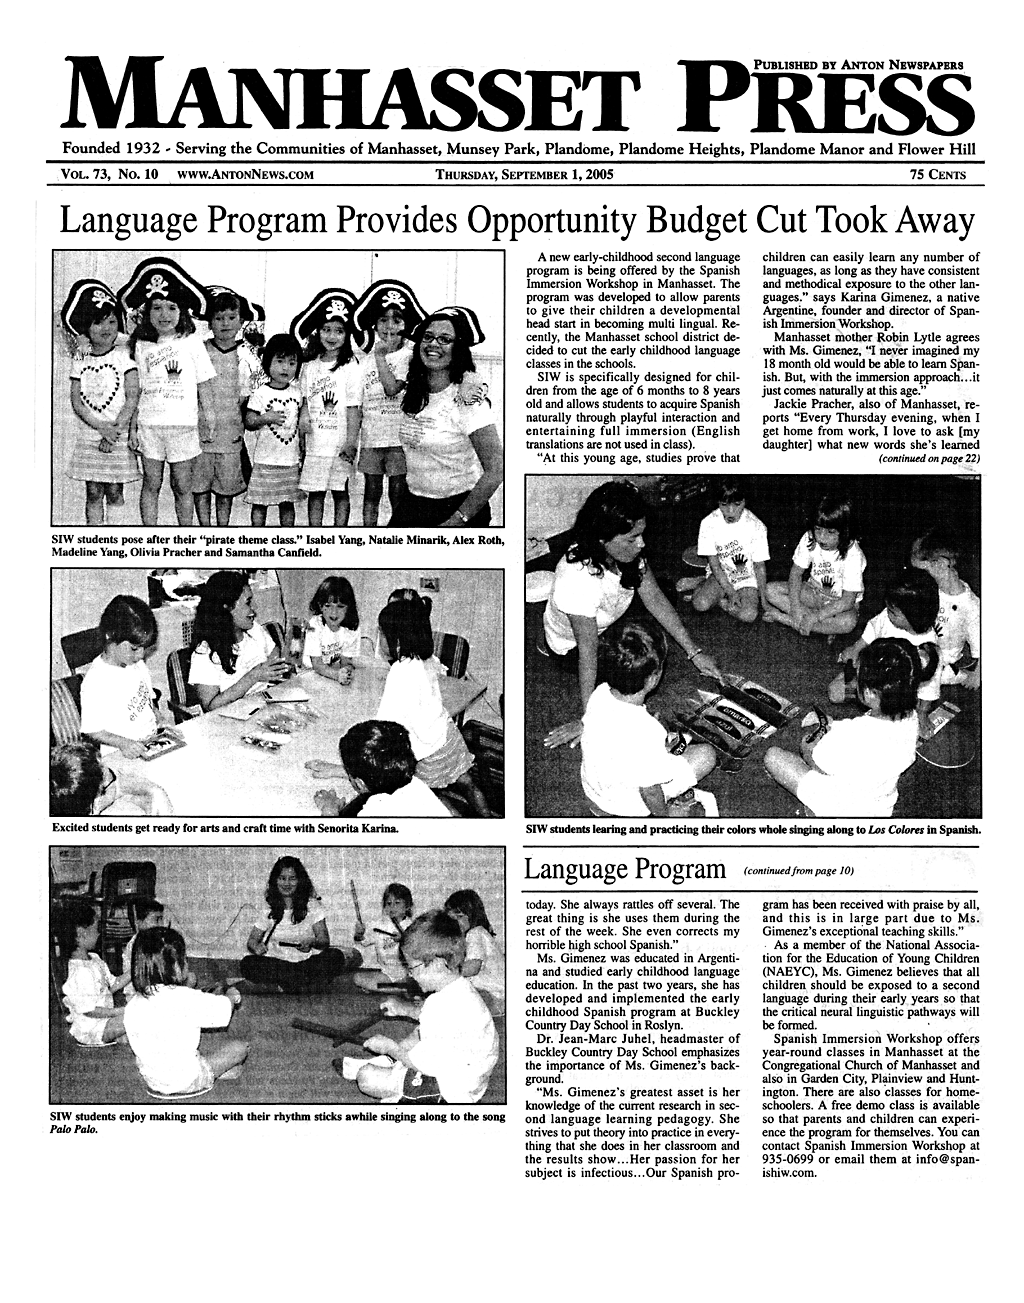 Manhasset press article copy2